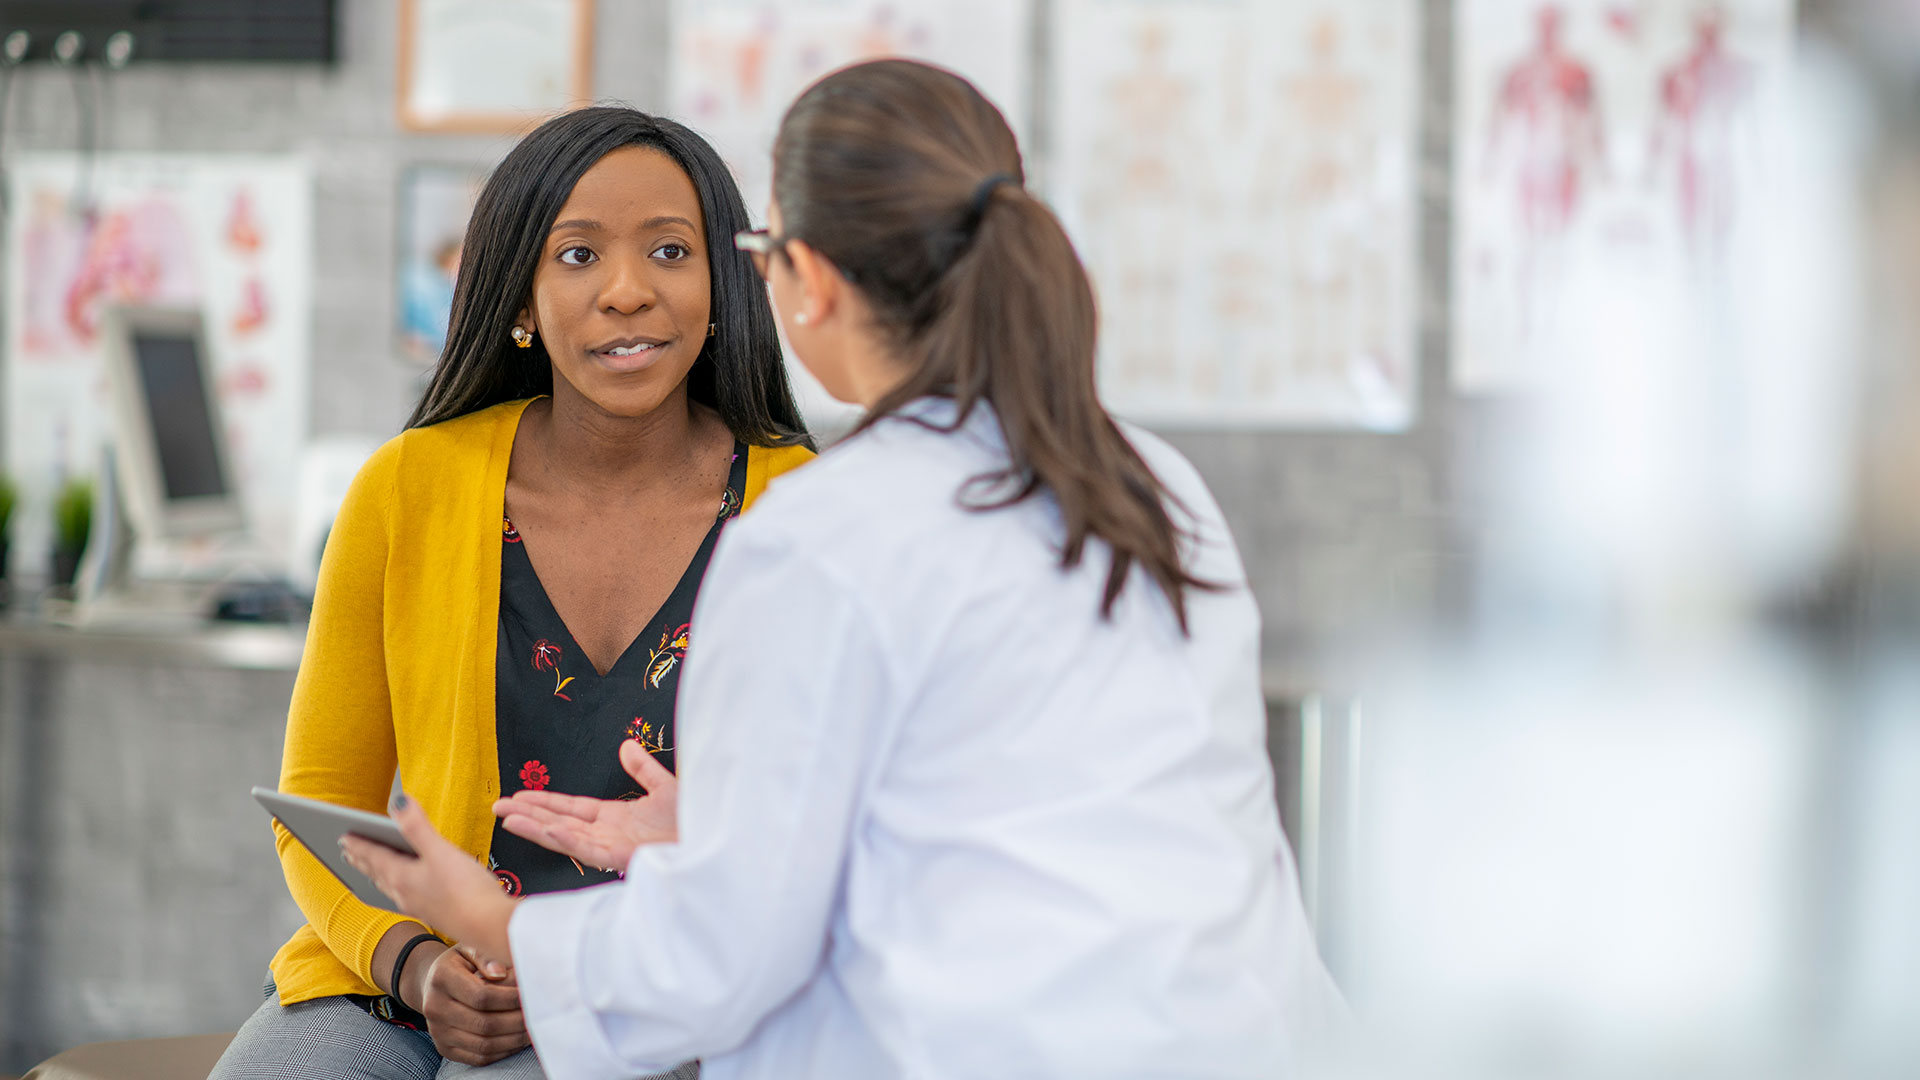 Questions To Ask Your Doctor At Your Next Visit